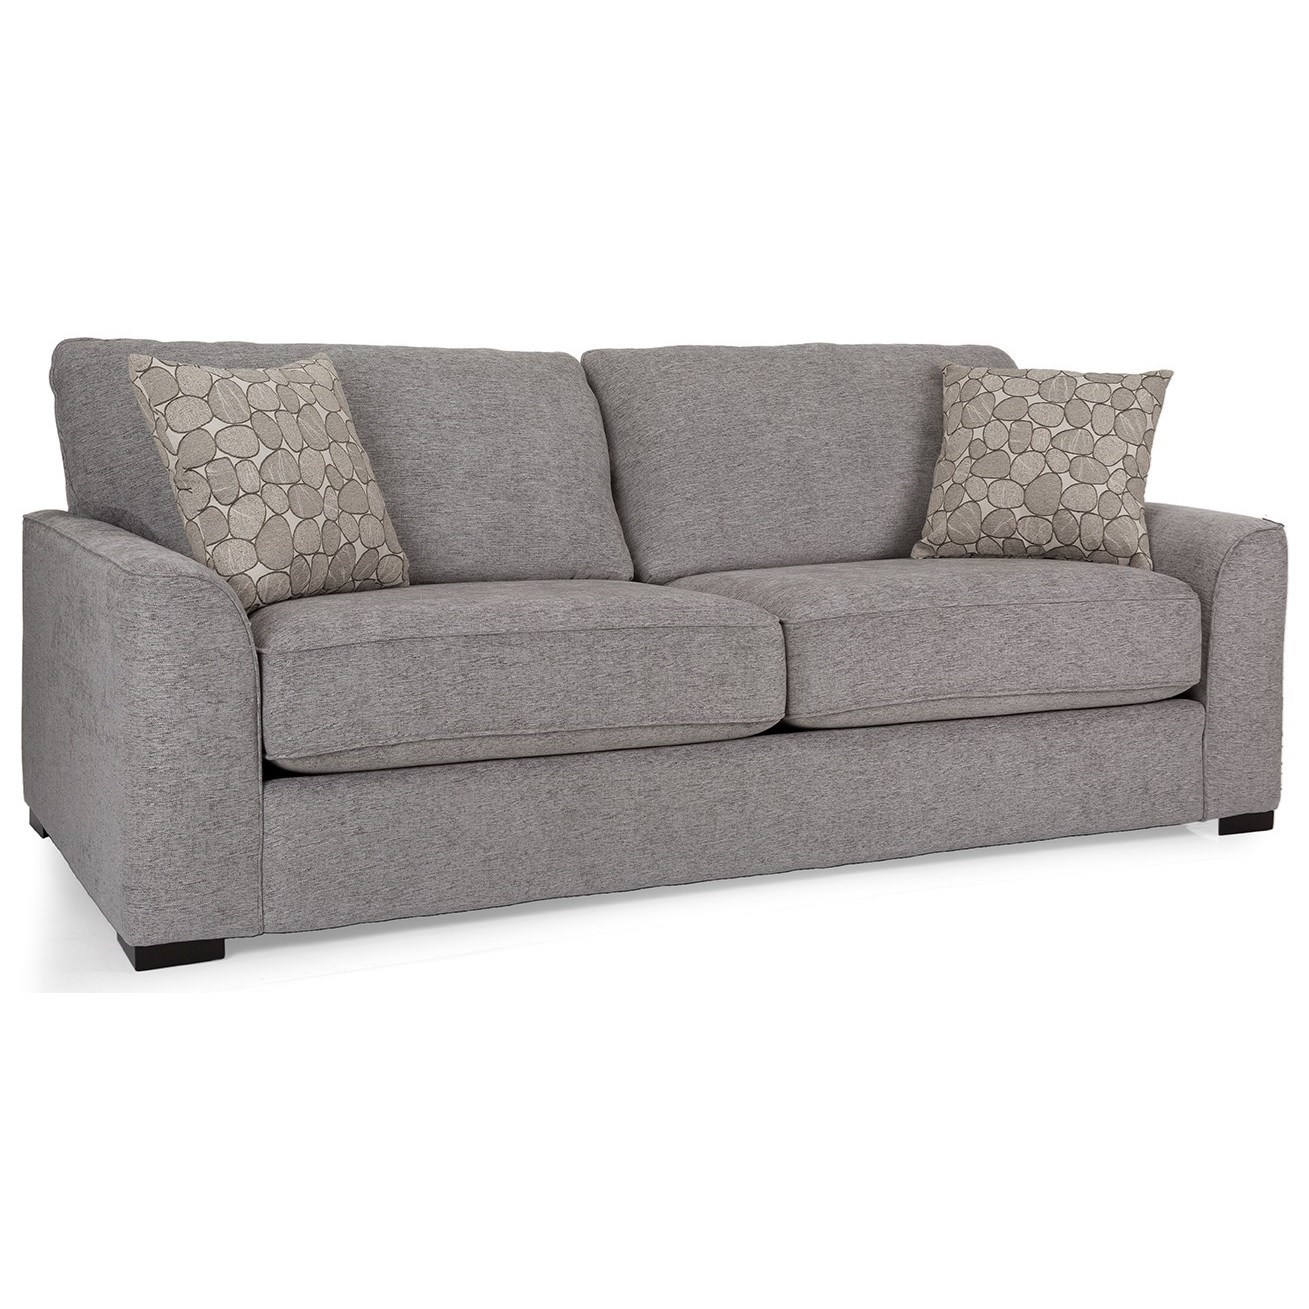 2786 Sofa by Decor-Rest at Rooms for Less